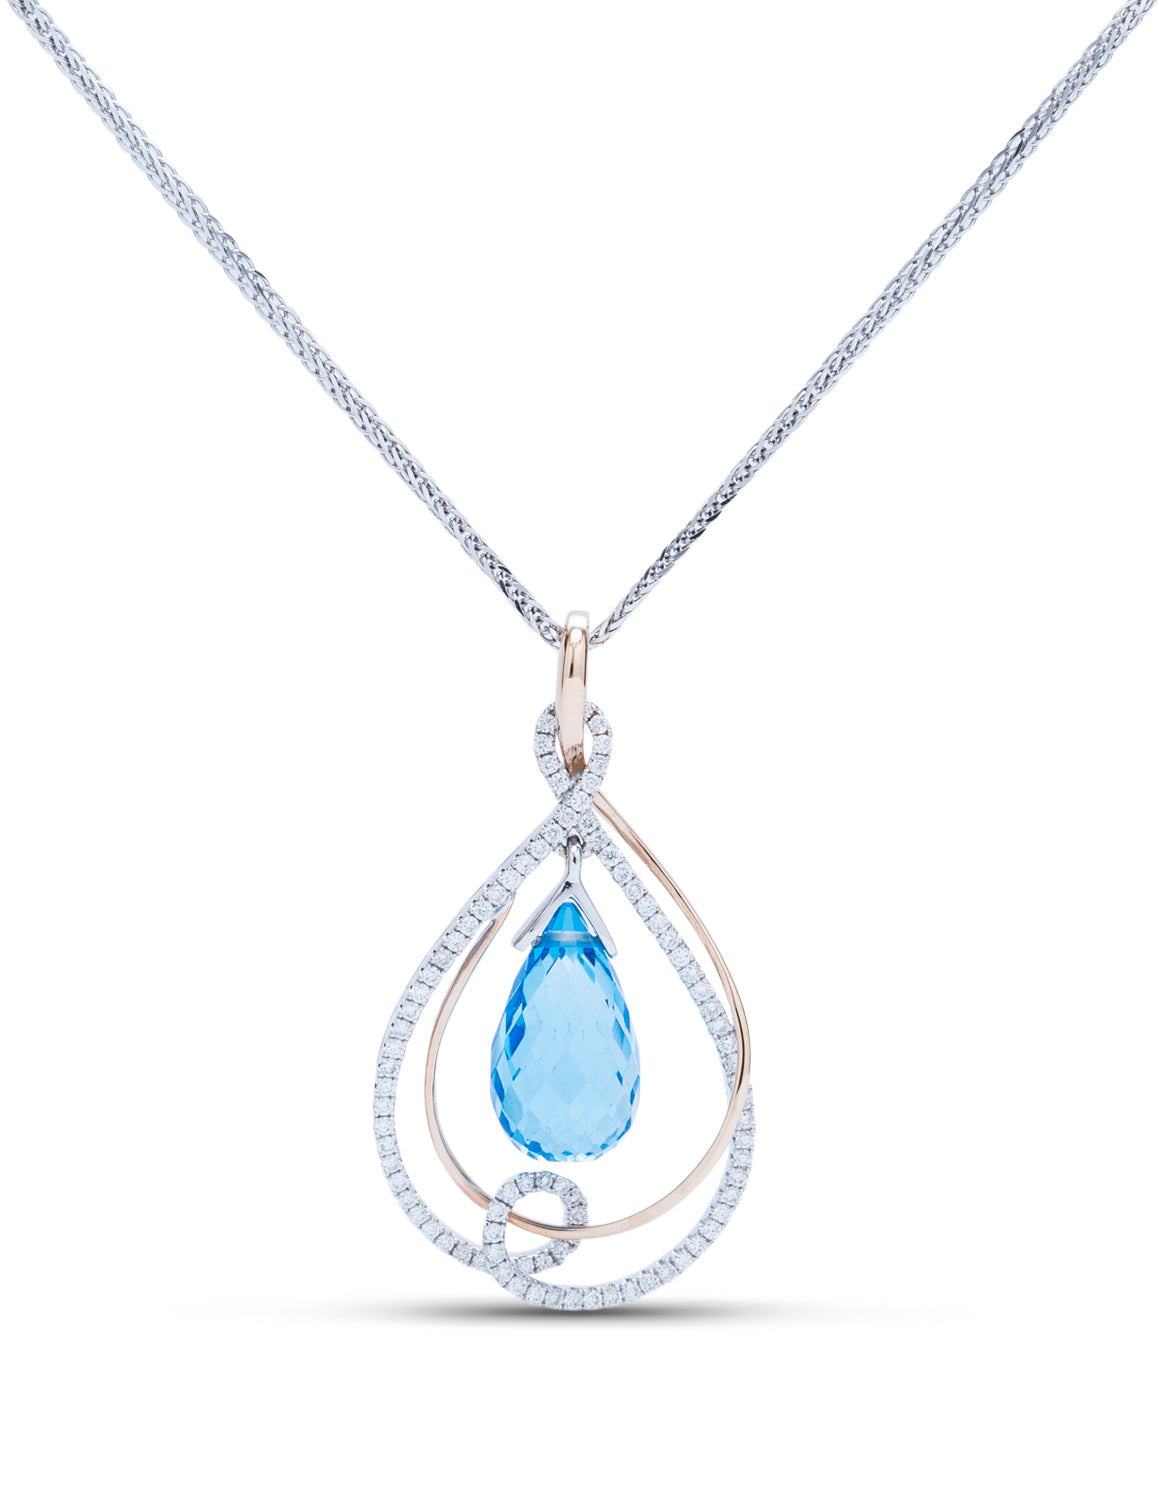 Blue Topaz Briolette With Diamonds Pendant - Charles Koll Jewellers